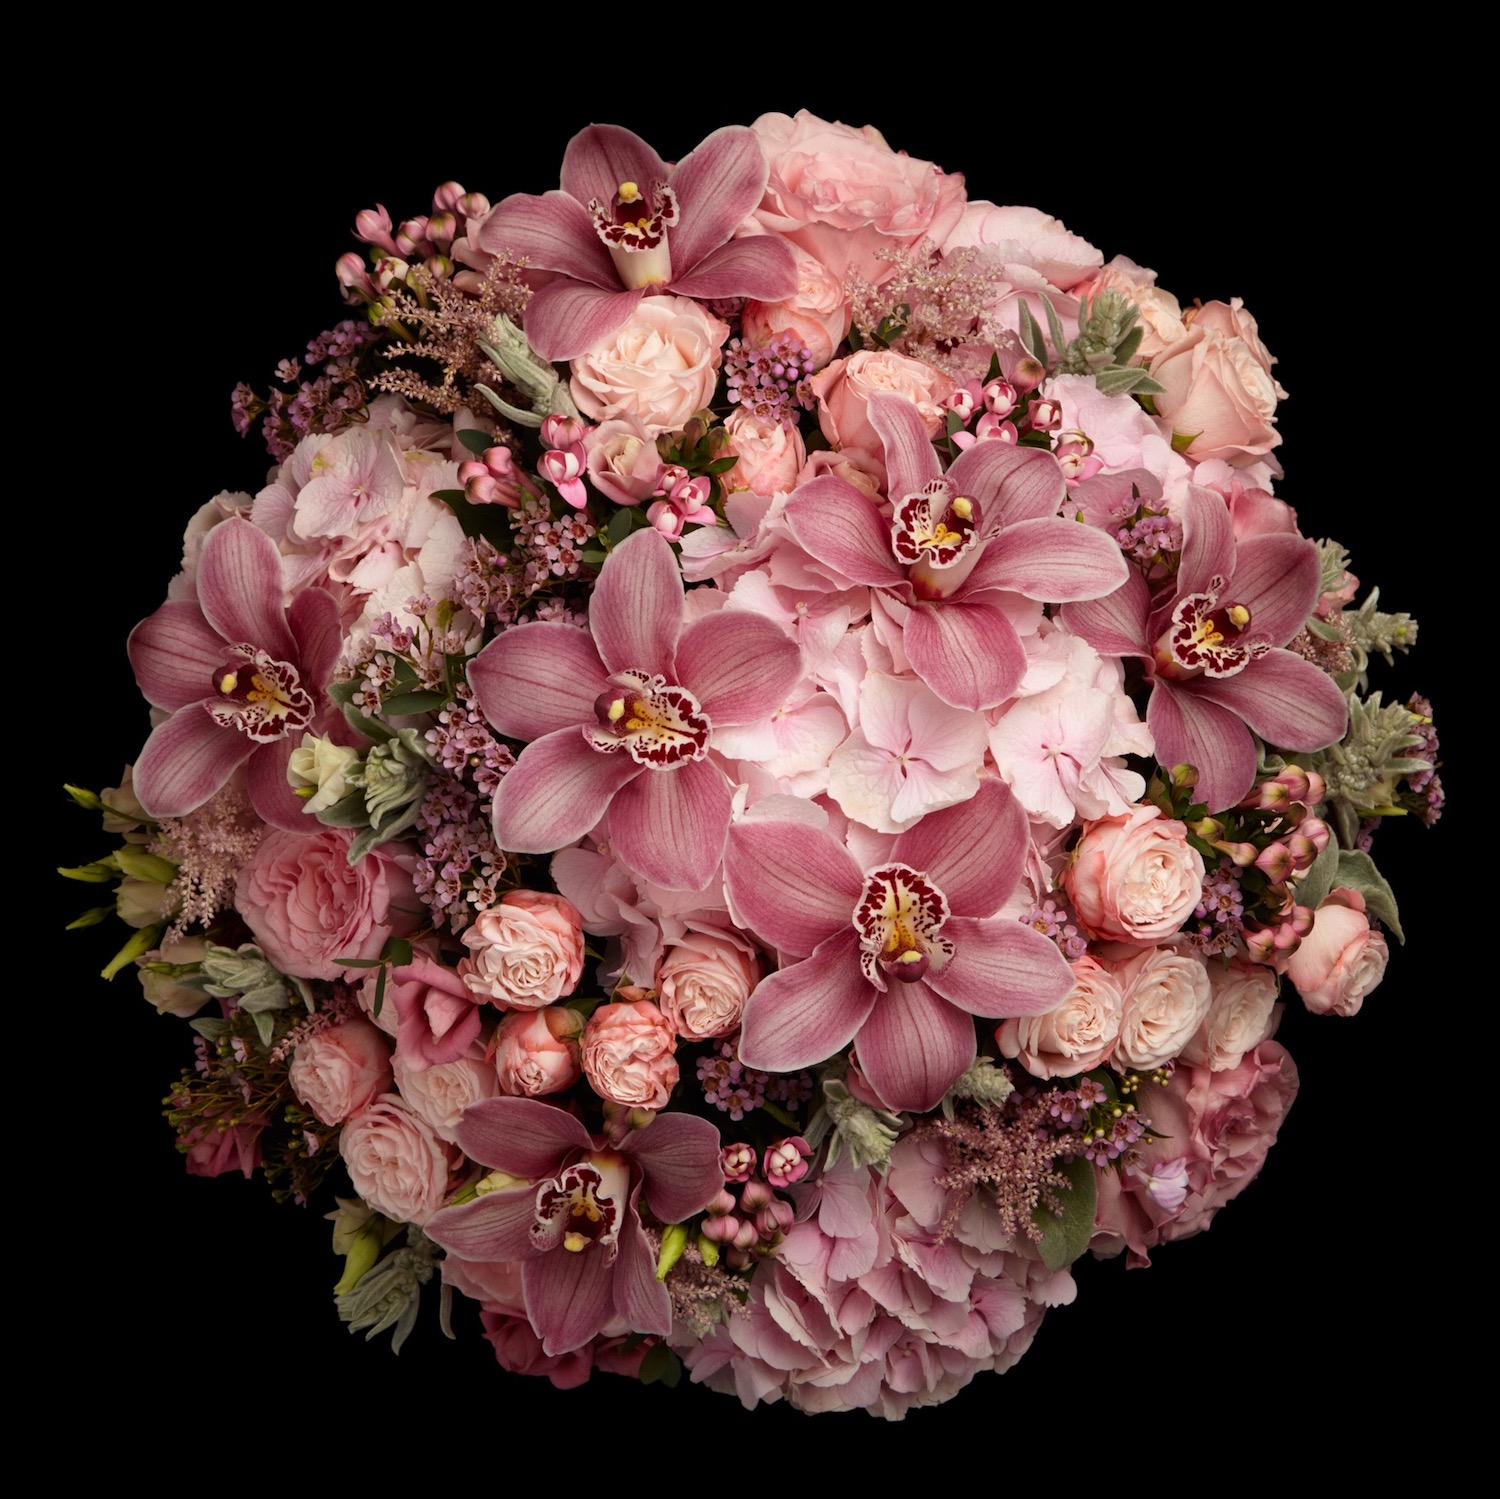 """Neill Strain FLoral Couture's """"Sloane"""" range of pink designs available to order online"""